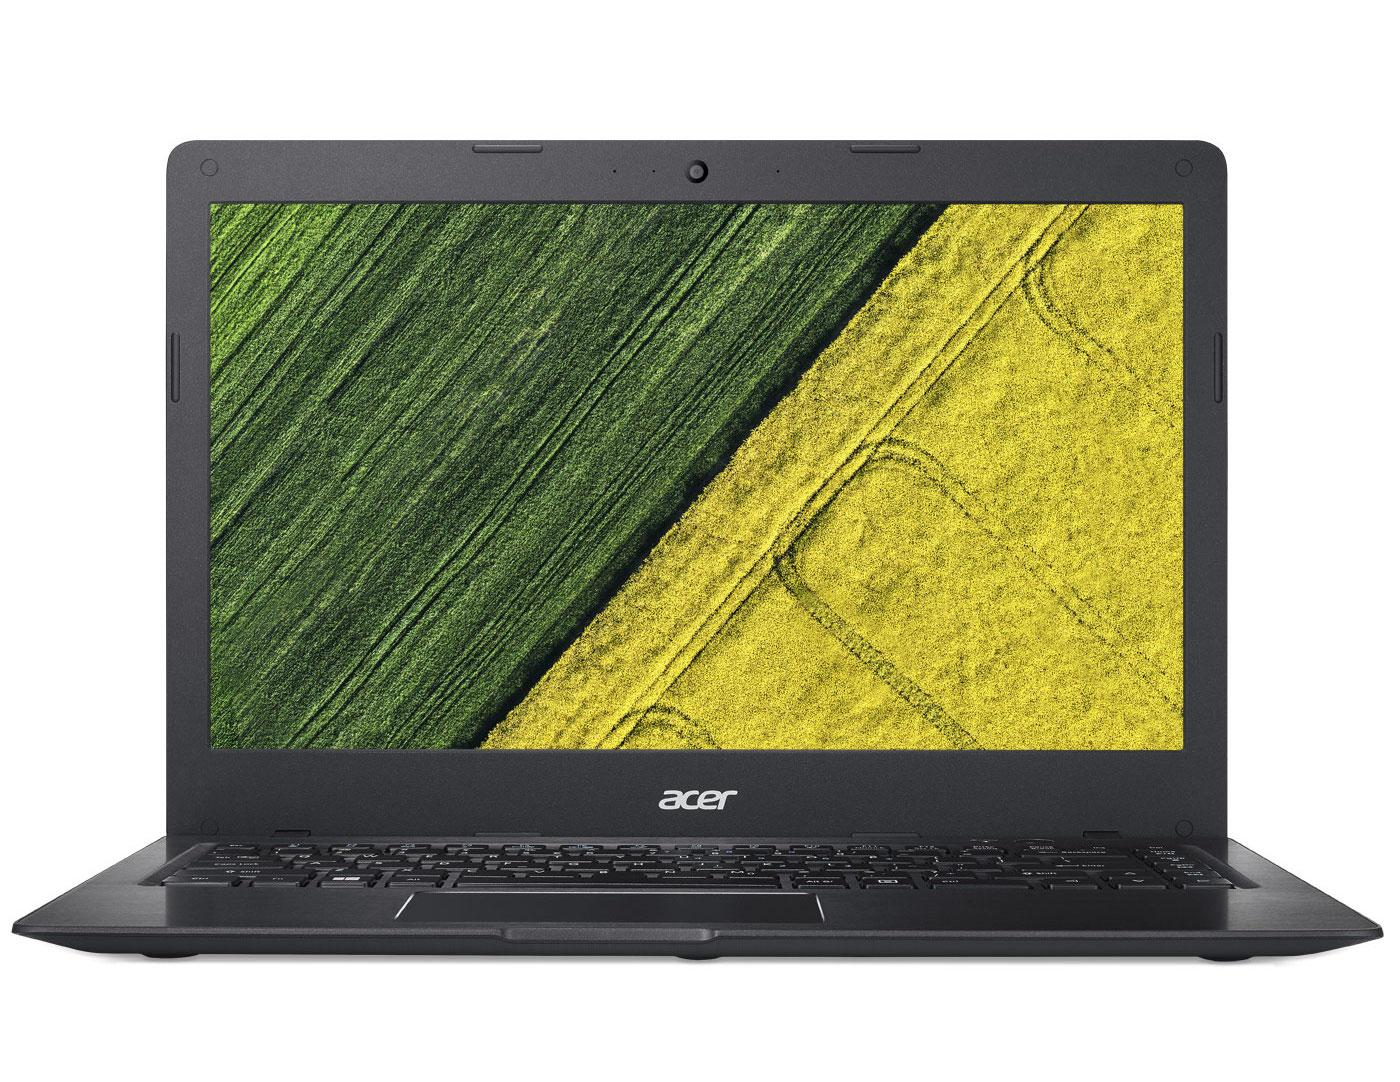 Image du PC portable Acer Swift 1 SF114-31-C405